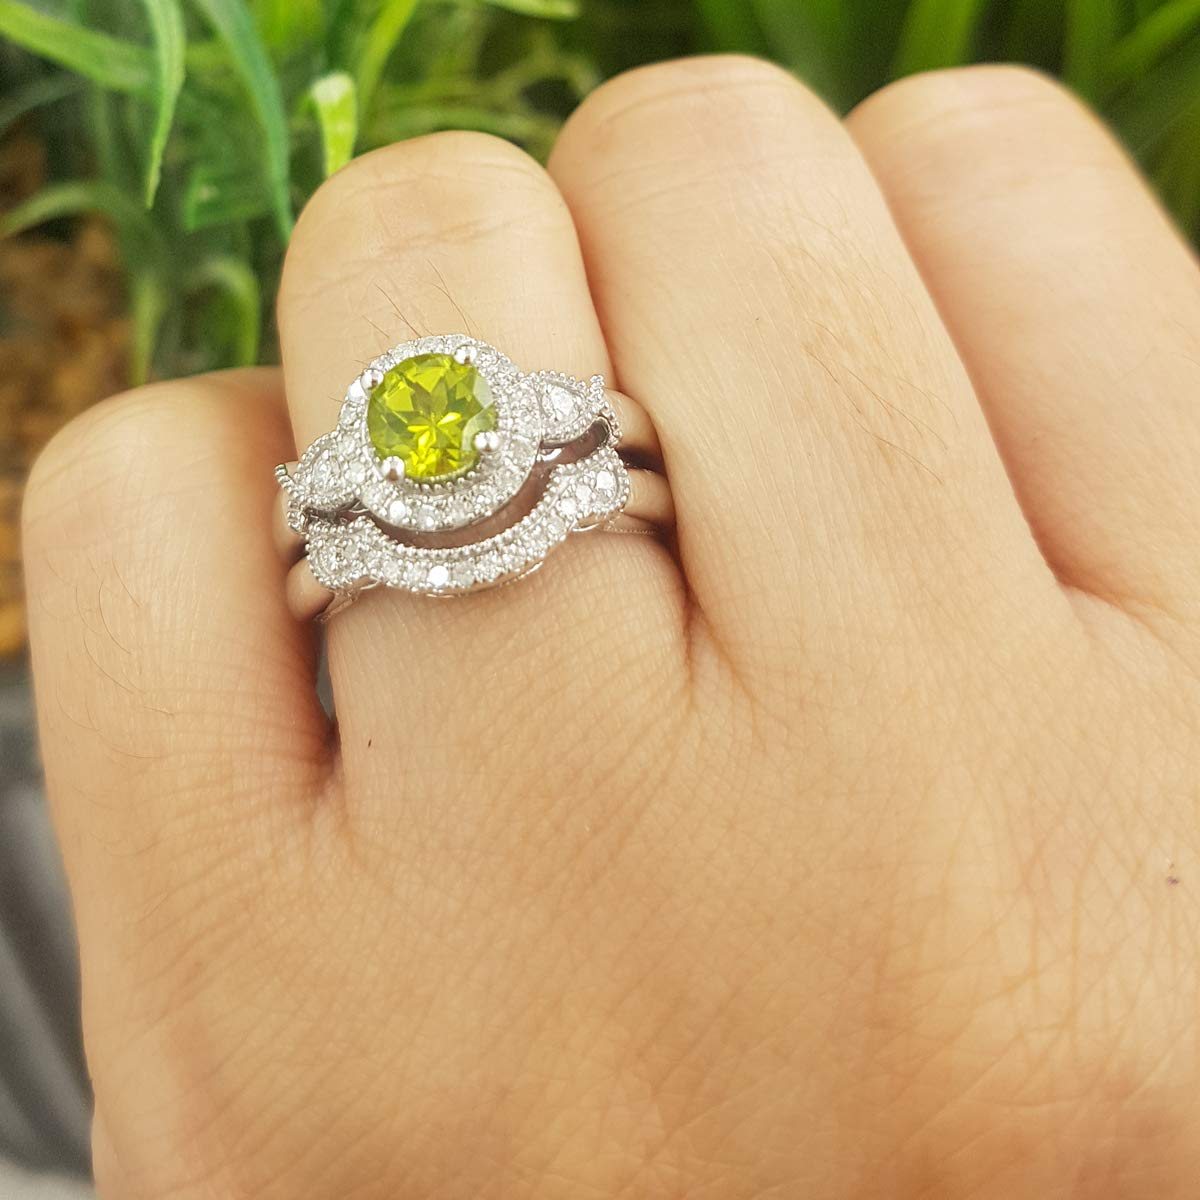 Dazzlingrock Collection 10K 6 MM Round Peridot & White Diamond Ladies Halo Engagement Ring Set, White Gold, Size 8 by Dazzlingrock Collection (Image #5)